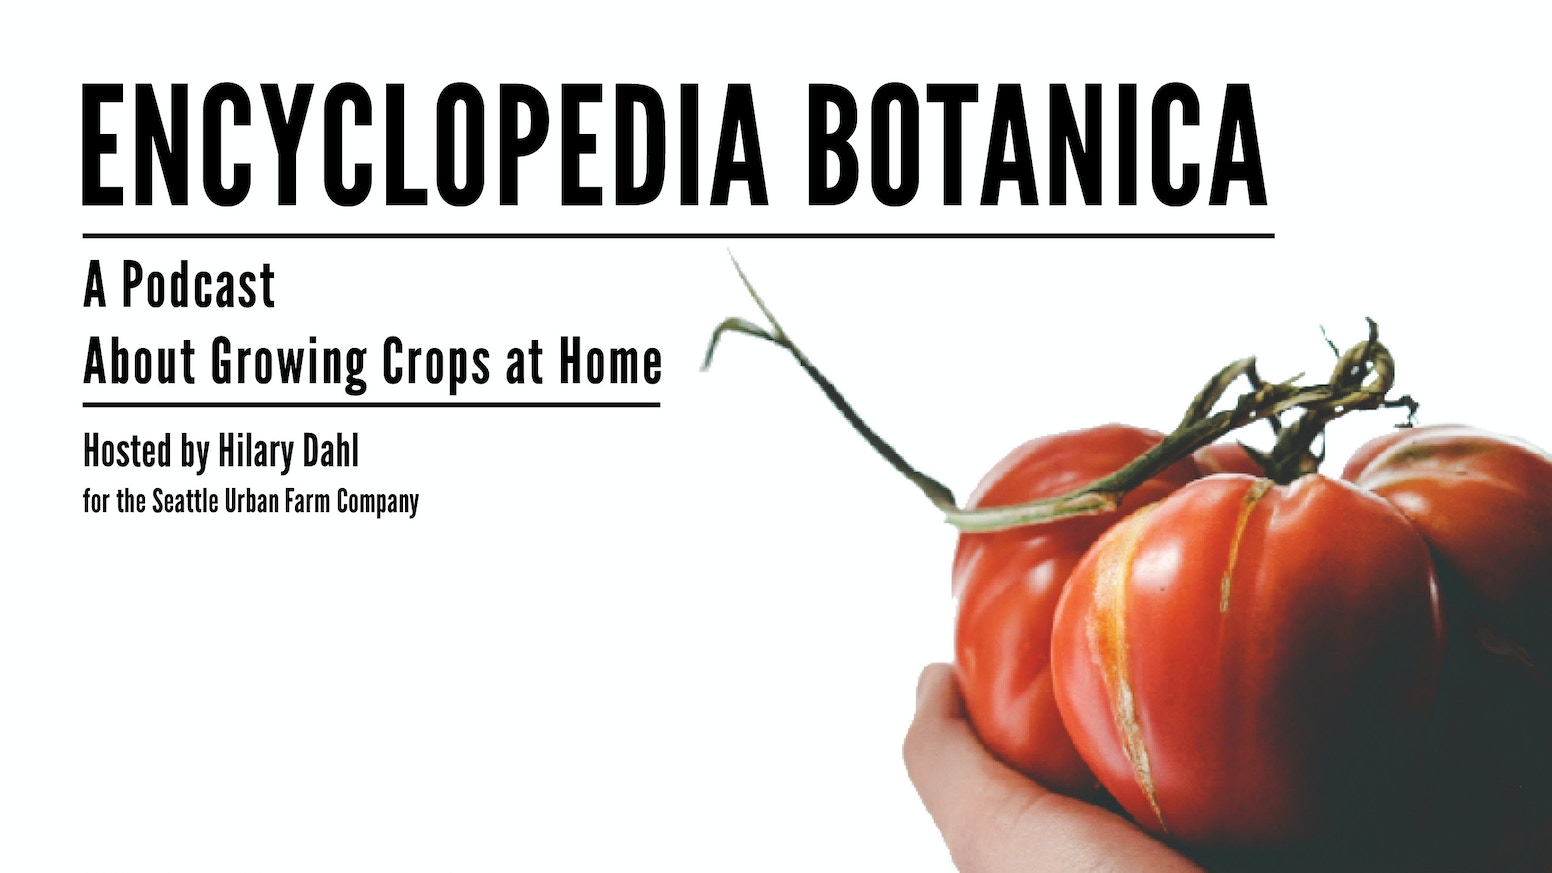 Encyclopedia Botanica is a listener-supported podcast about growing crops at home.